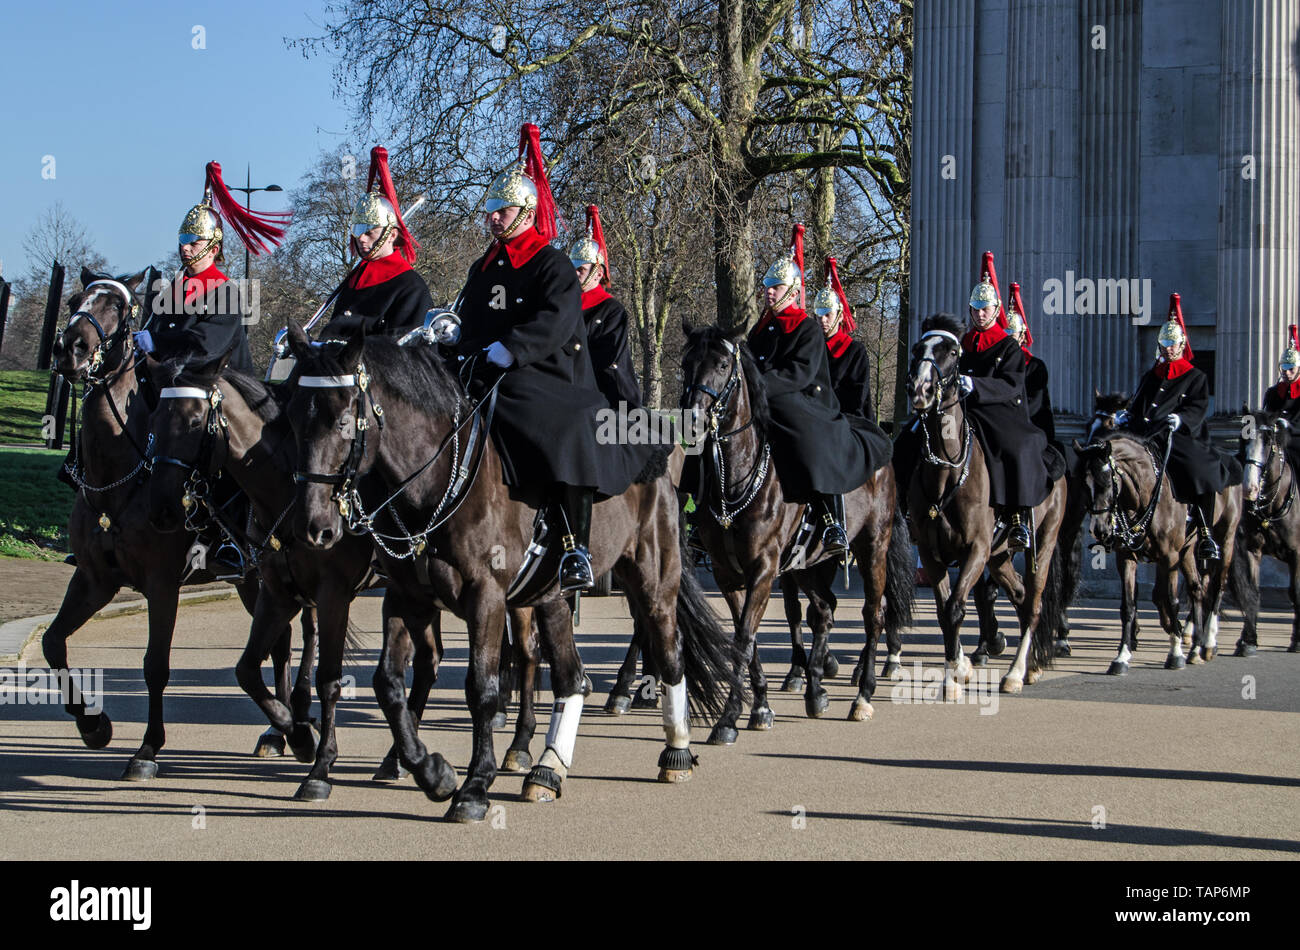 LONDON, UK - JANUARY 28, 2016:  Cavalry soldiers from the Blues and Royals regiment riding through Wellington Arch at Hyde Park Corner.  Part of the H - Stock Image